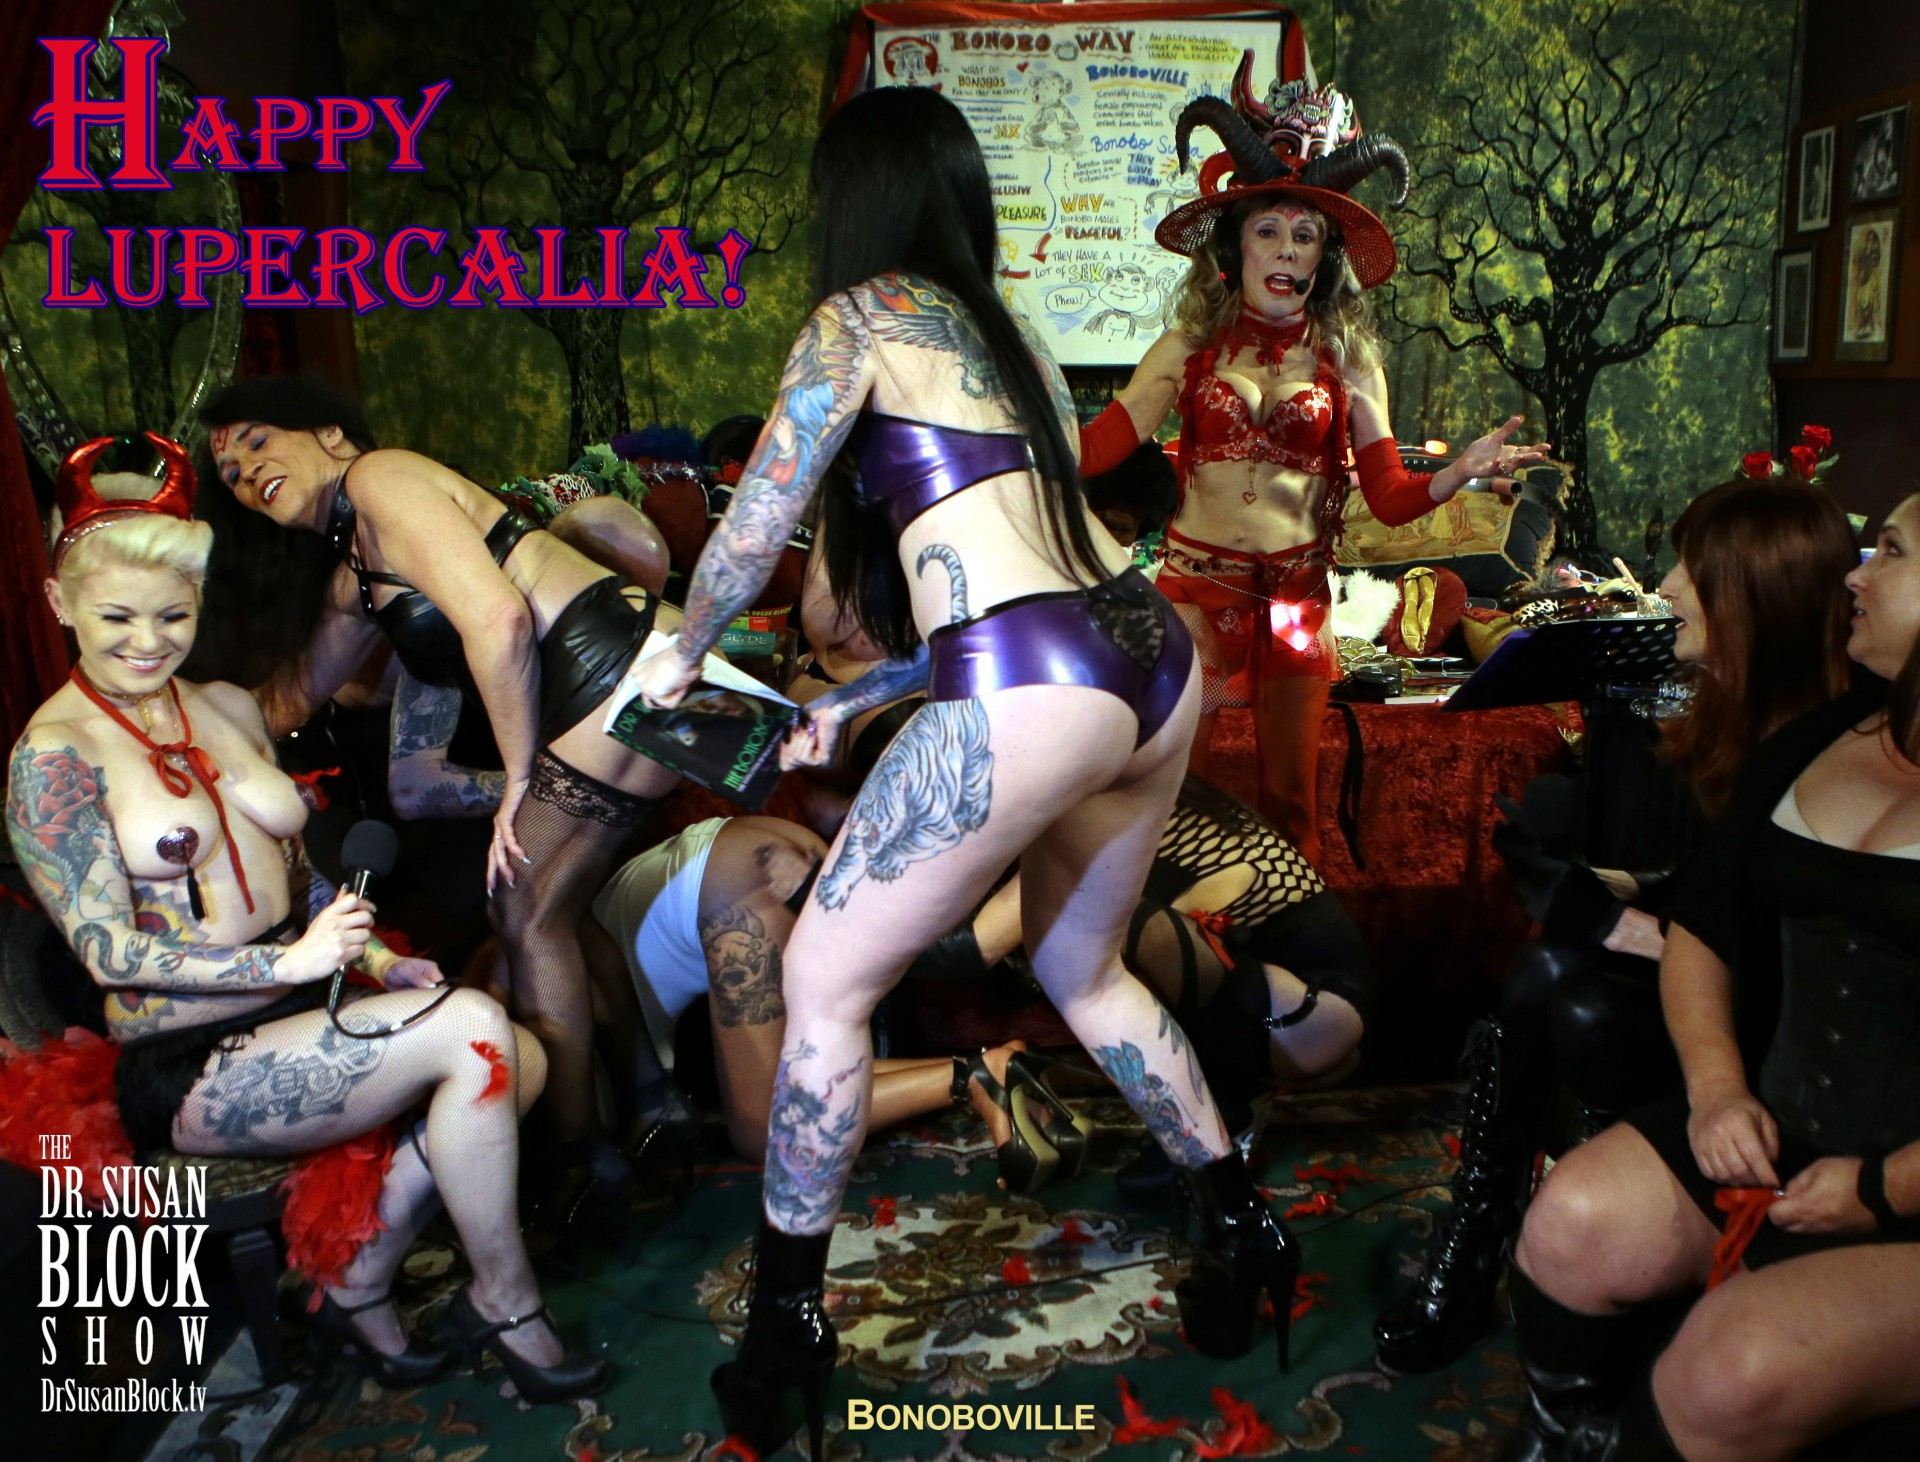 A Very Happy Whip-Snappy Lupercalia 2017